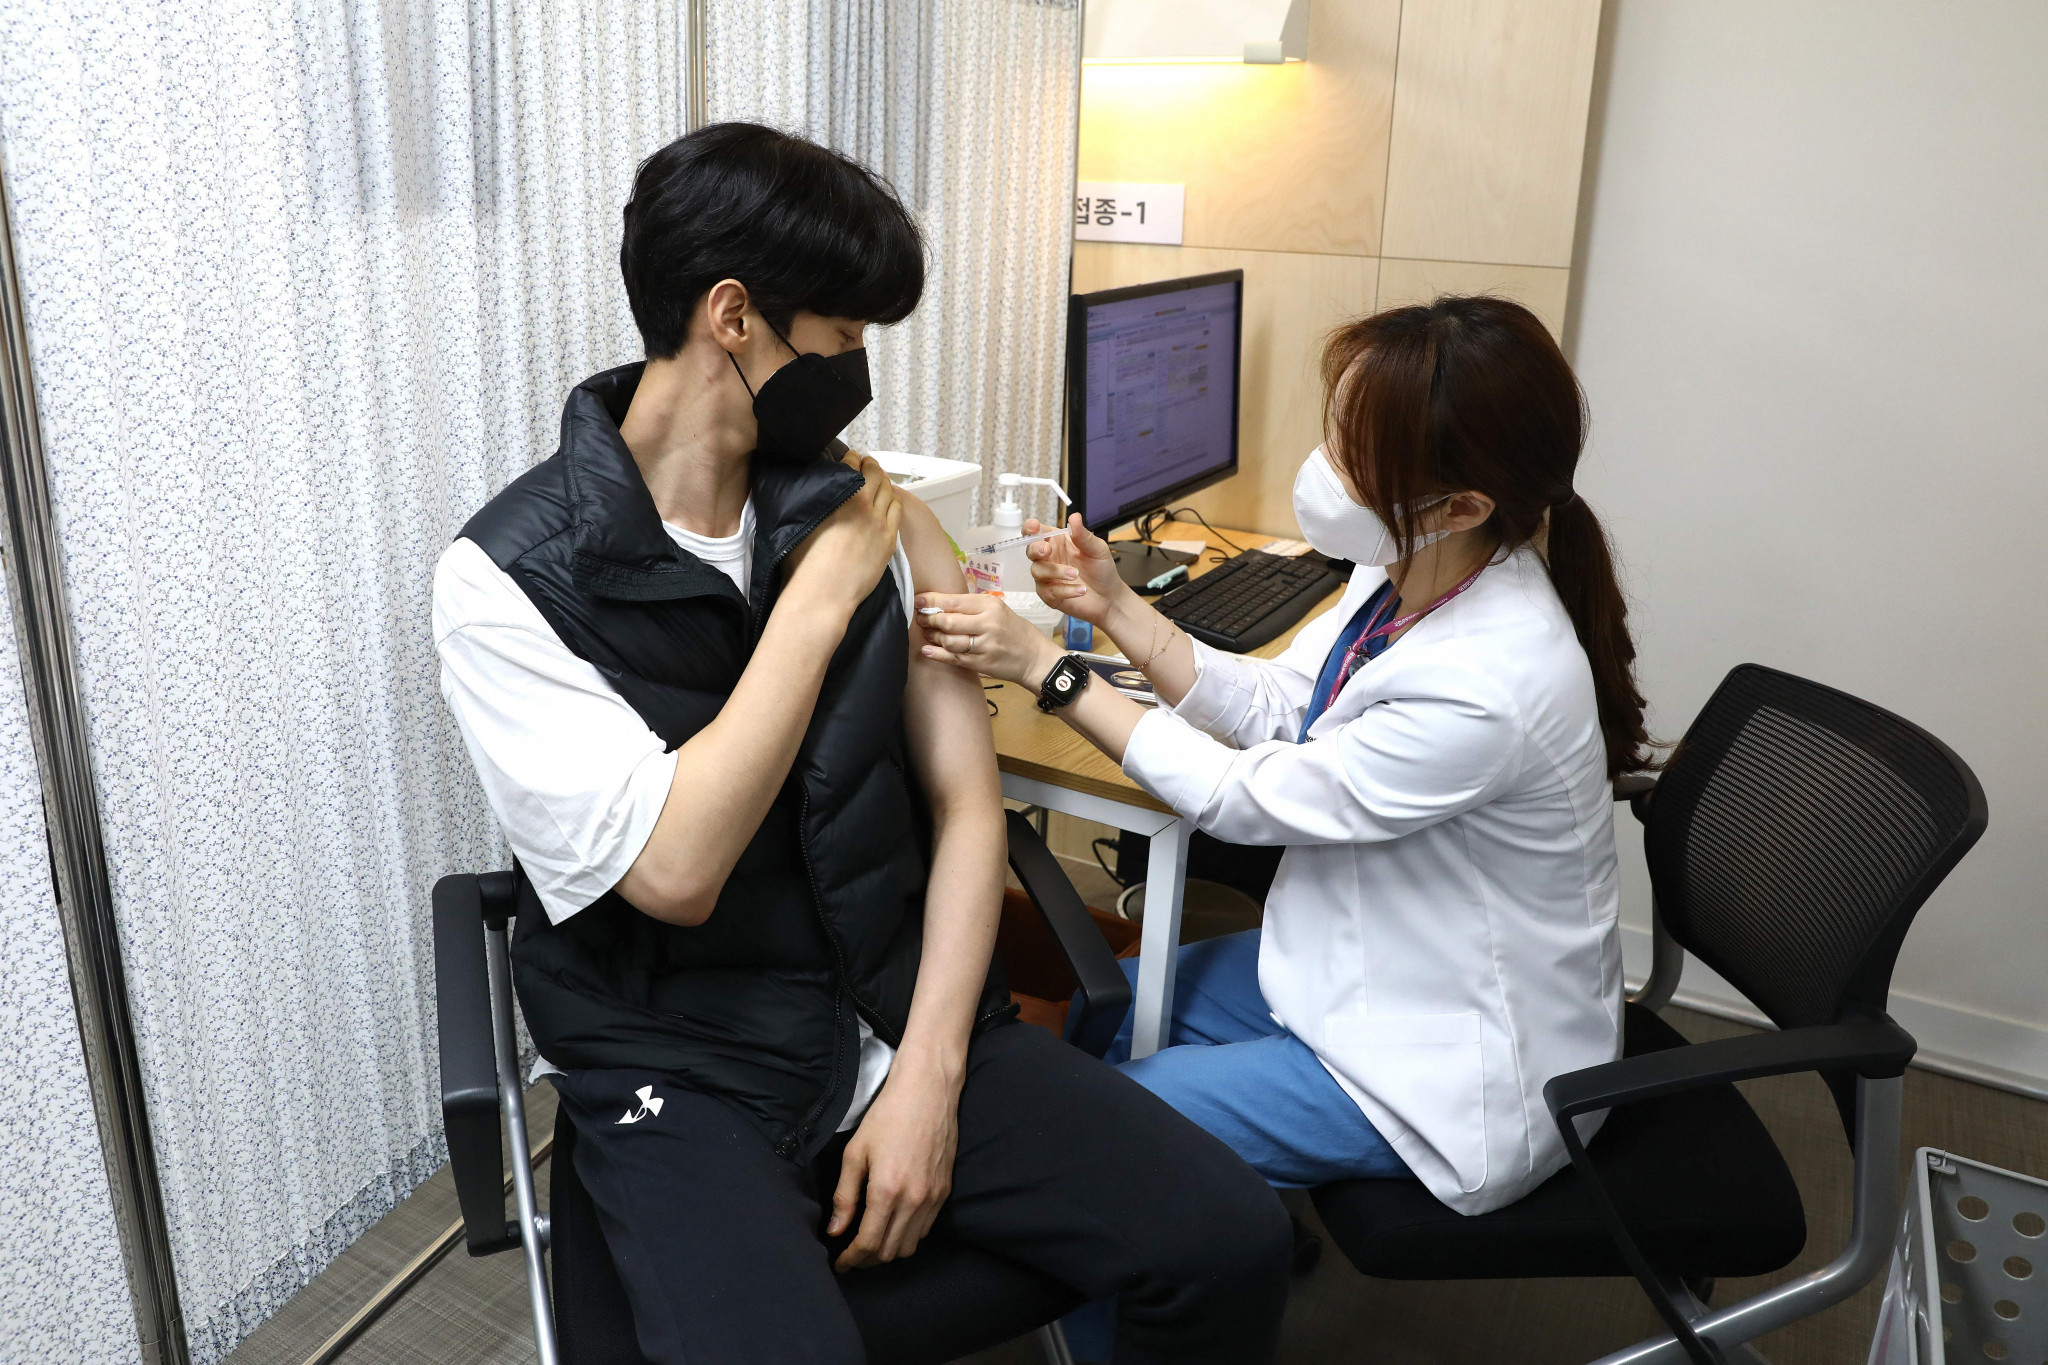 South Korea begins vaccinating athletes against COVID-19 ahead of Tokyo 2020